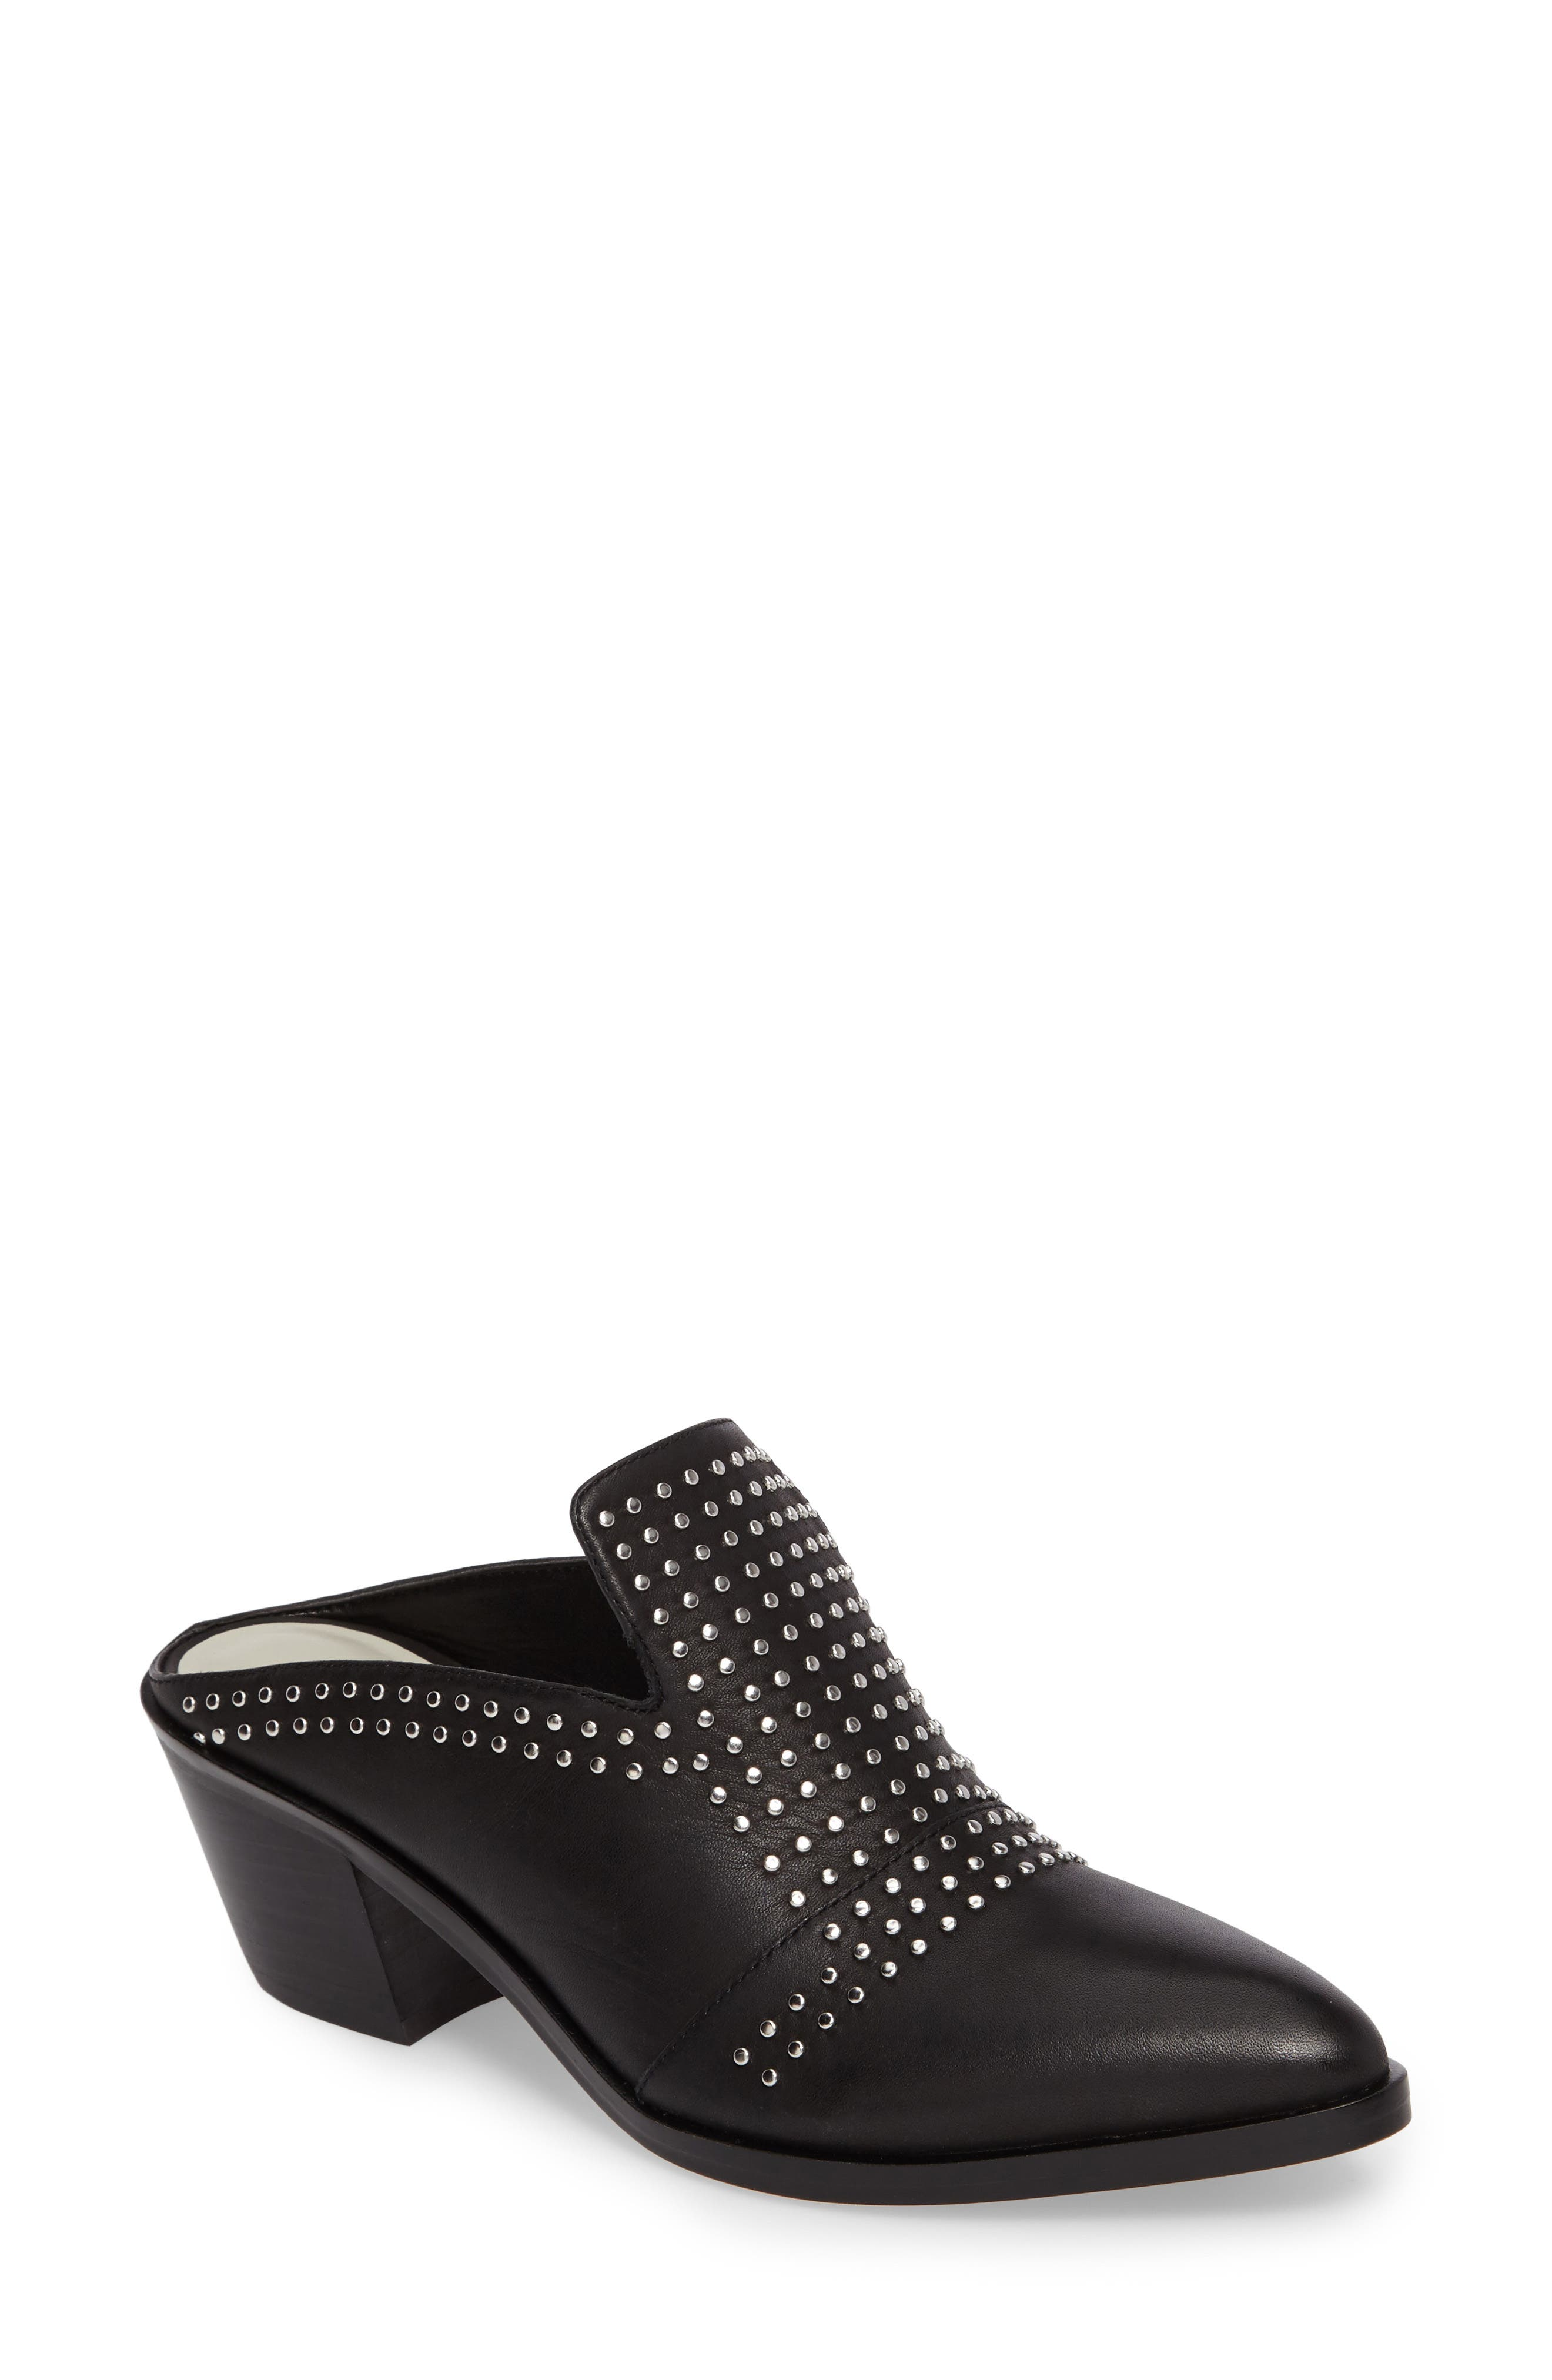 Lon Studded Loafer Mule,                             Main thumbnail 1, color,                             001